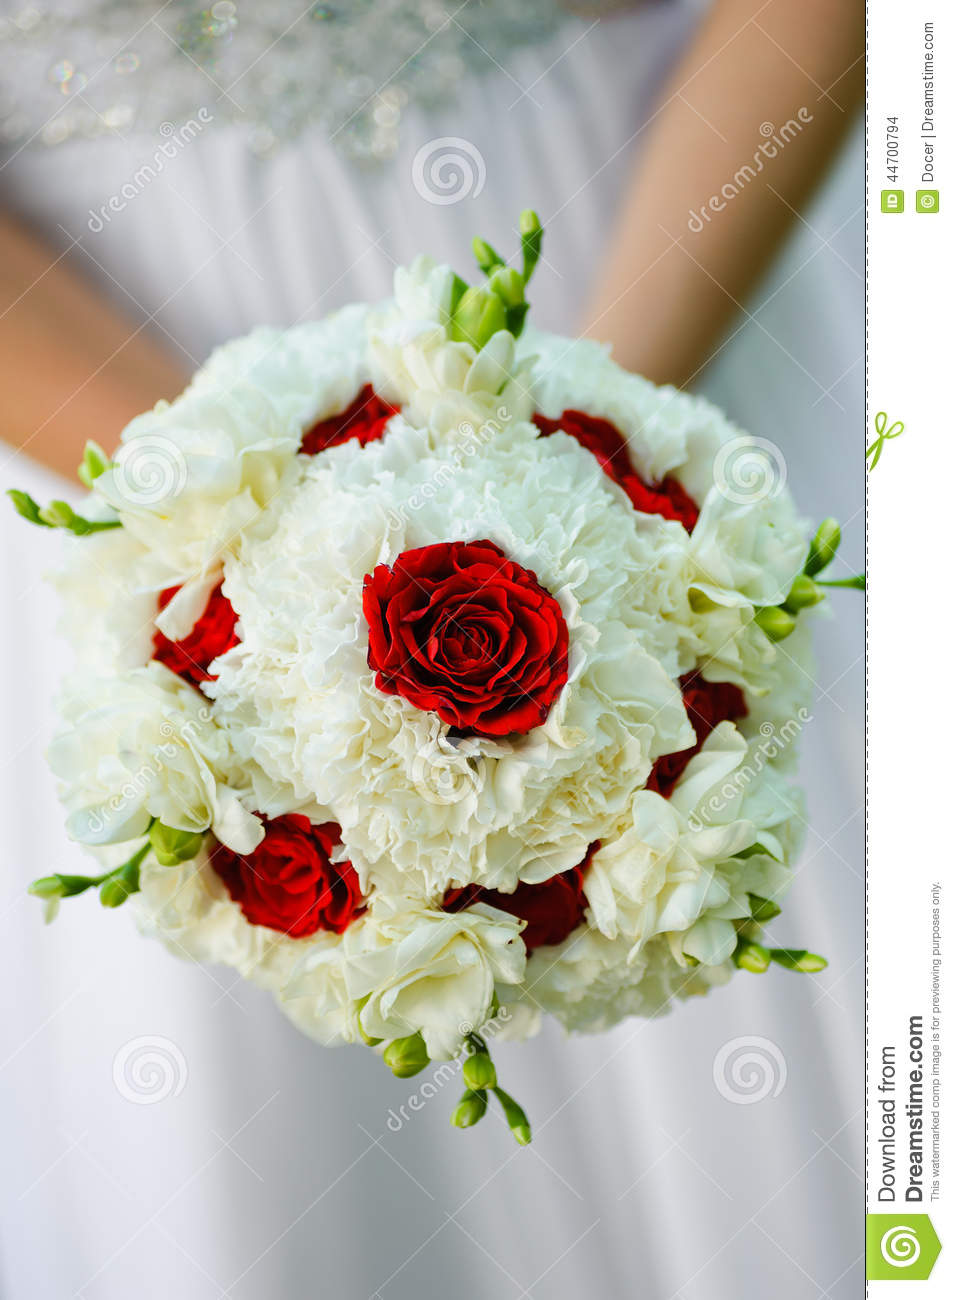 Beauty Wedding Bouquet Of Red Roses And White Flowers Stock Photo